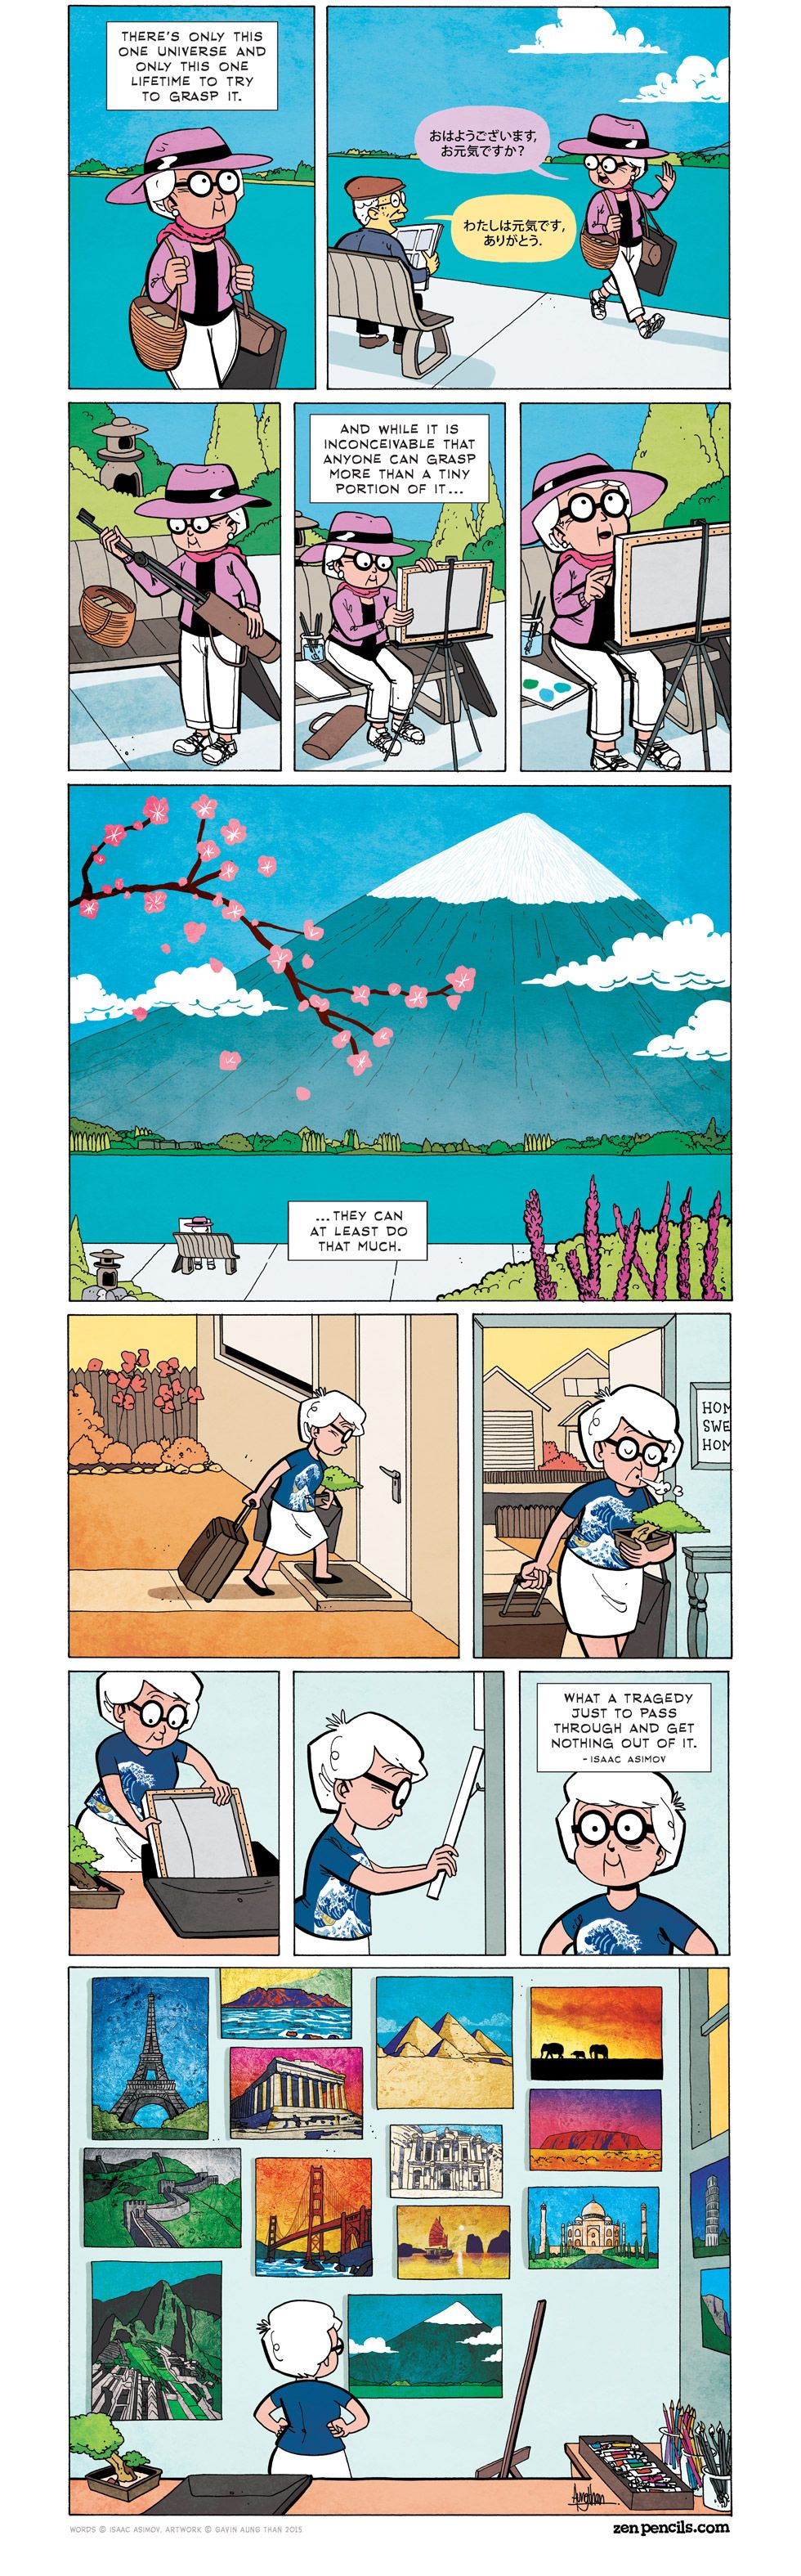 ZEN PENCILS – Cartoon quotes from inspirational folks: 172. ISAAC ASIMOV: A lifetime of learning